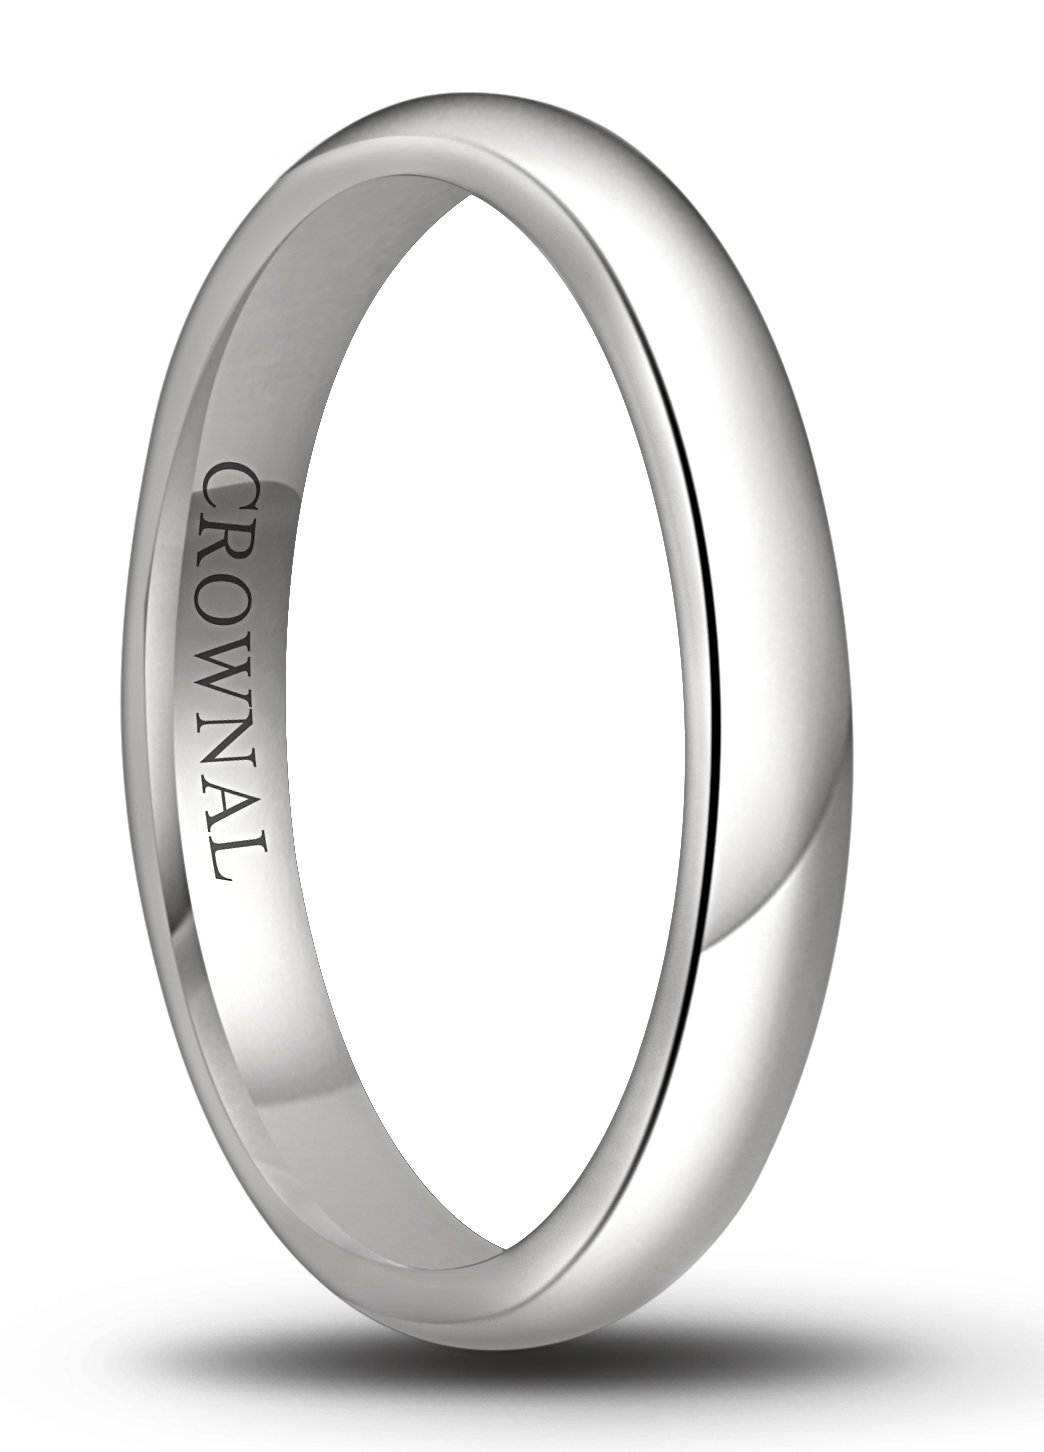 Crownal 6mm/5mm/4mm/3mm/2mm White Tungsten Carbide Polished Classic Dome Wedding Ring All Sizes (3mm, 7.5)